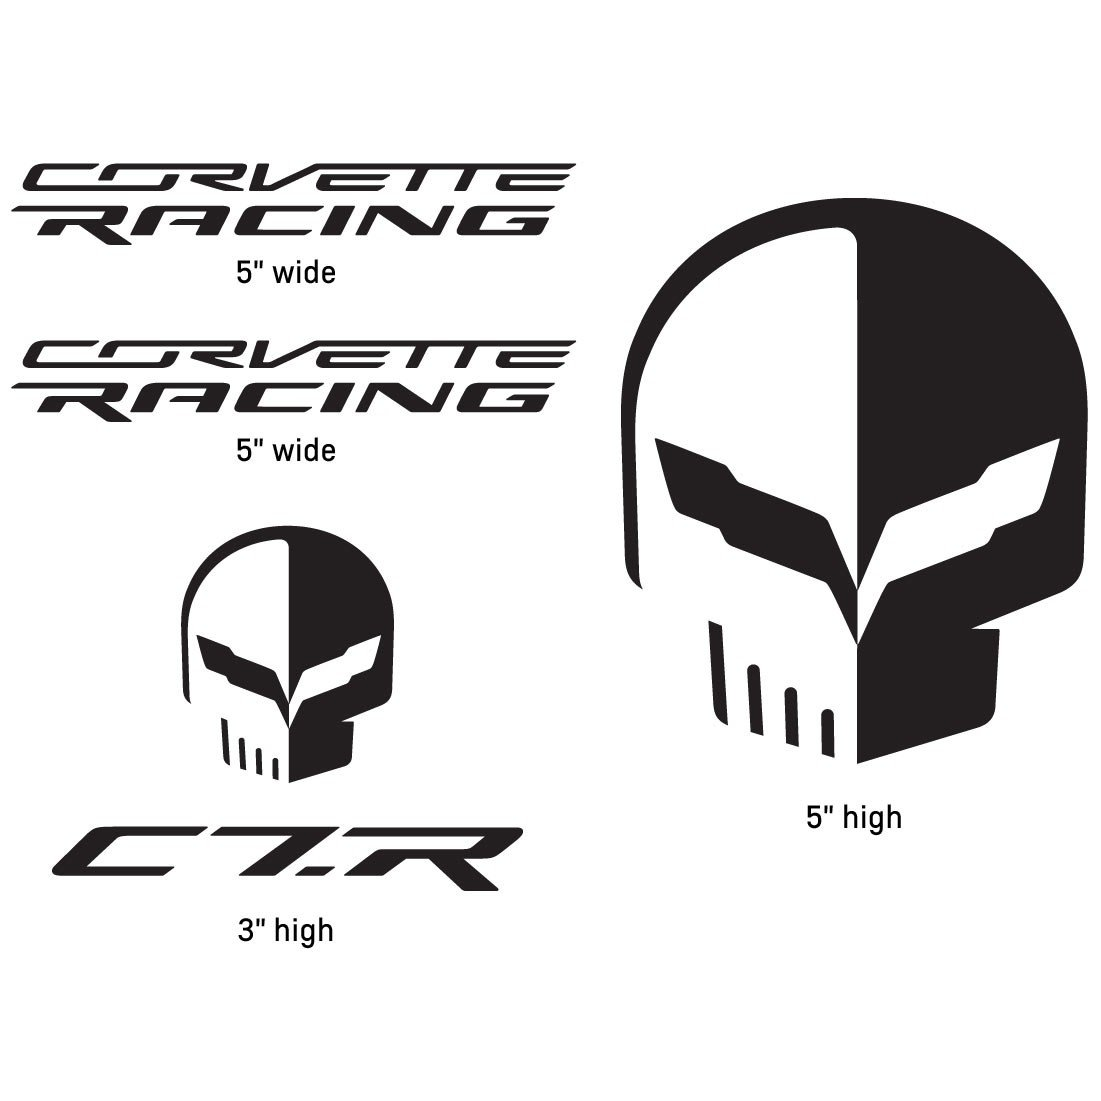 Corvette Racing Logo Corvette racingjake decal 1101x1101